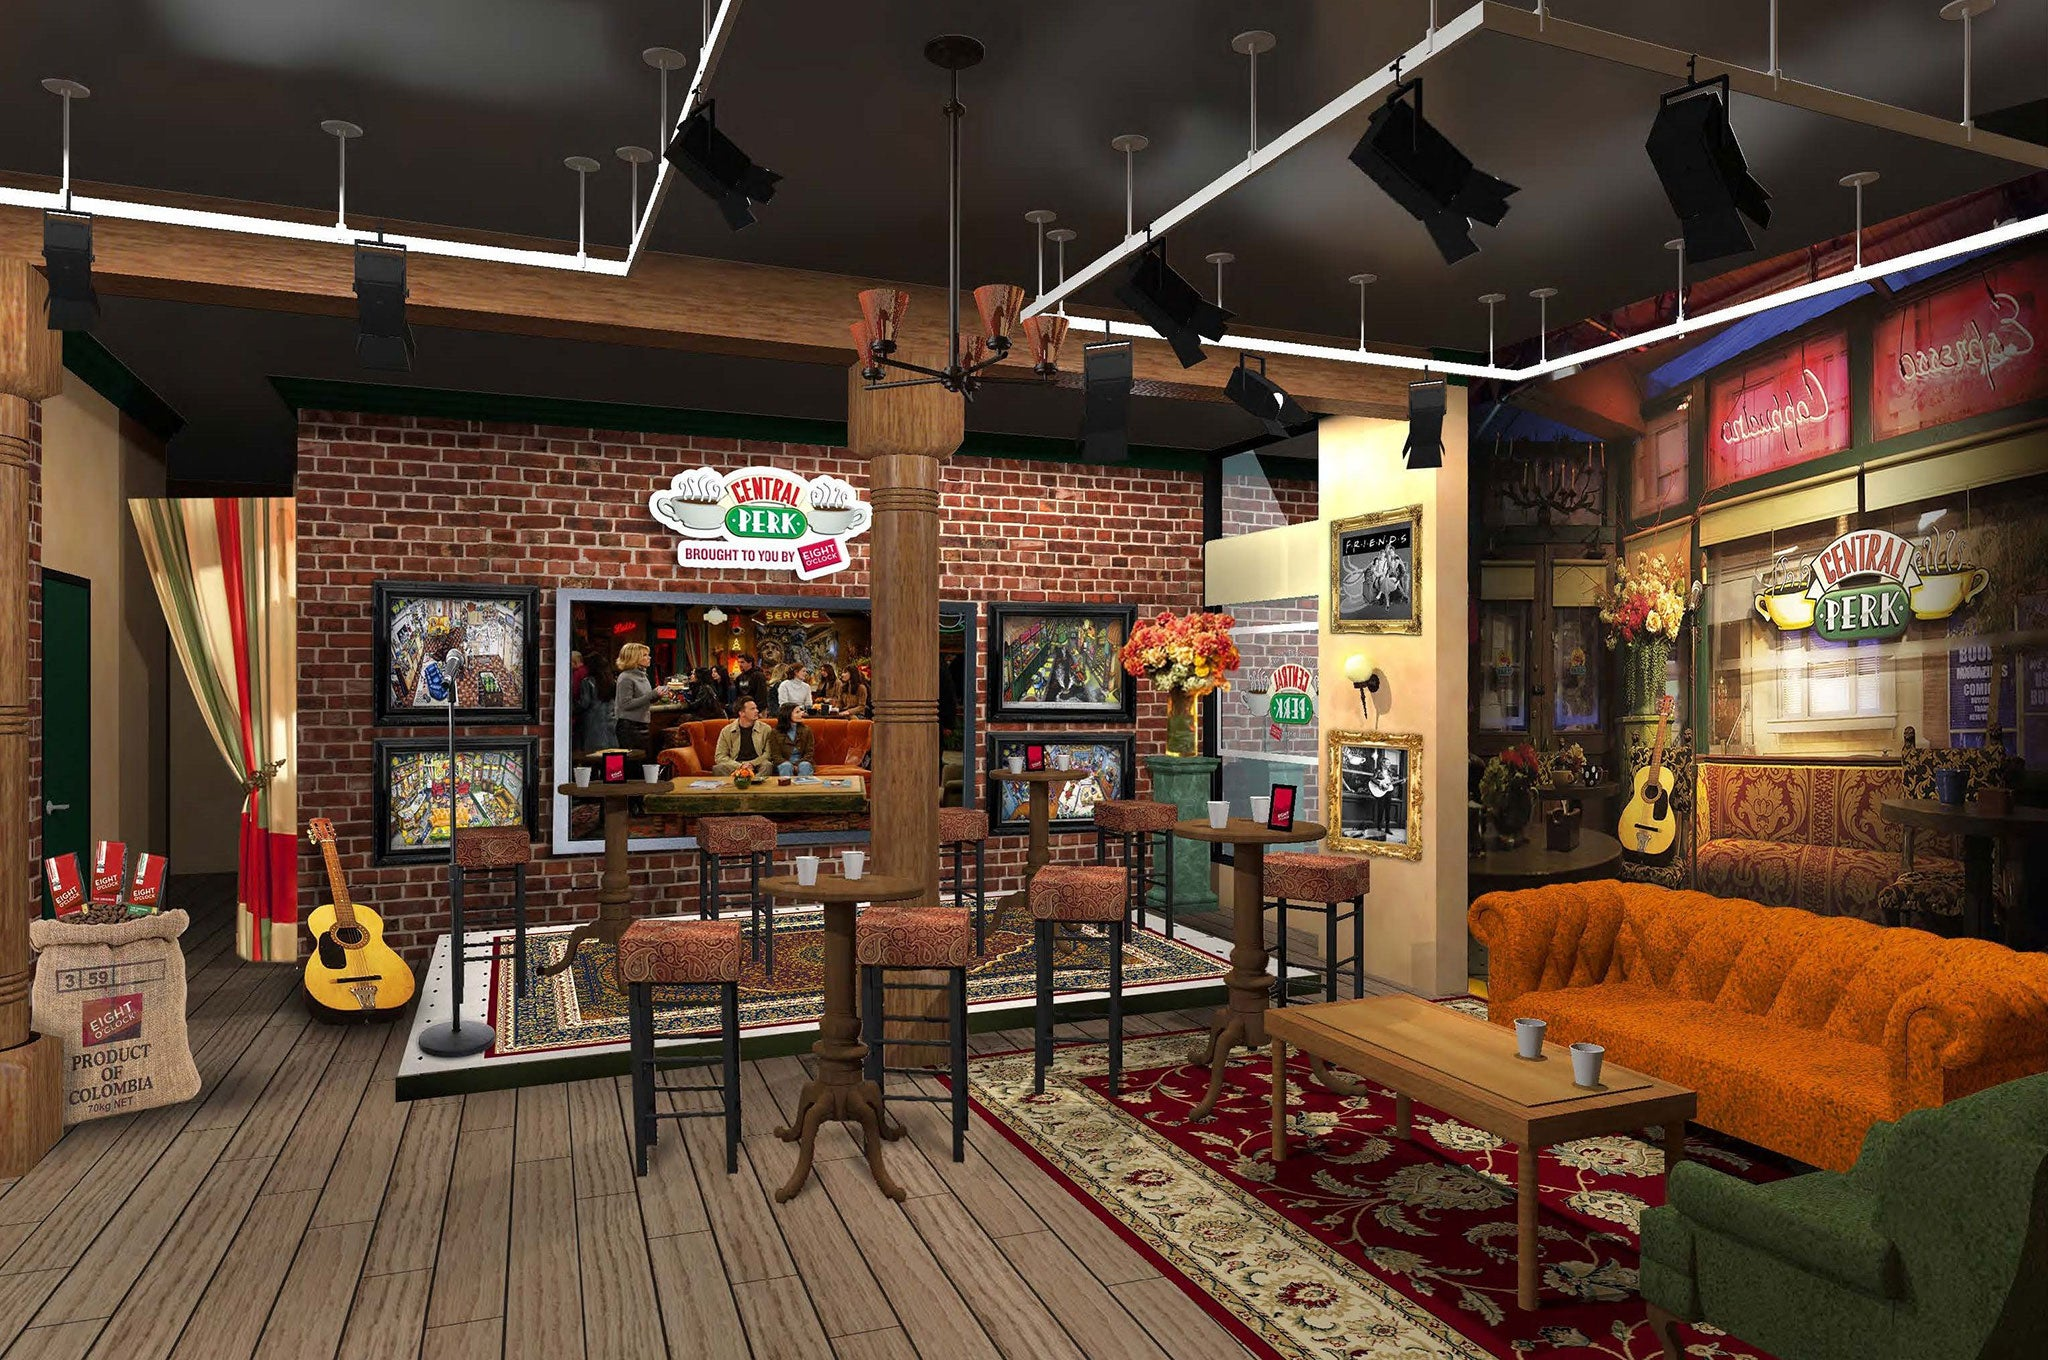 Friends Coffee Shop Central Perk To Open In New York Complete With Gunther And Orange Couch